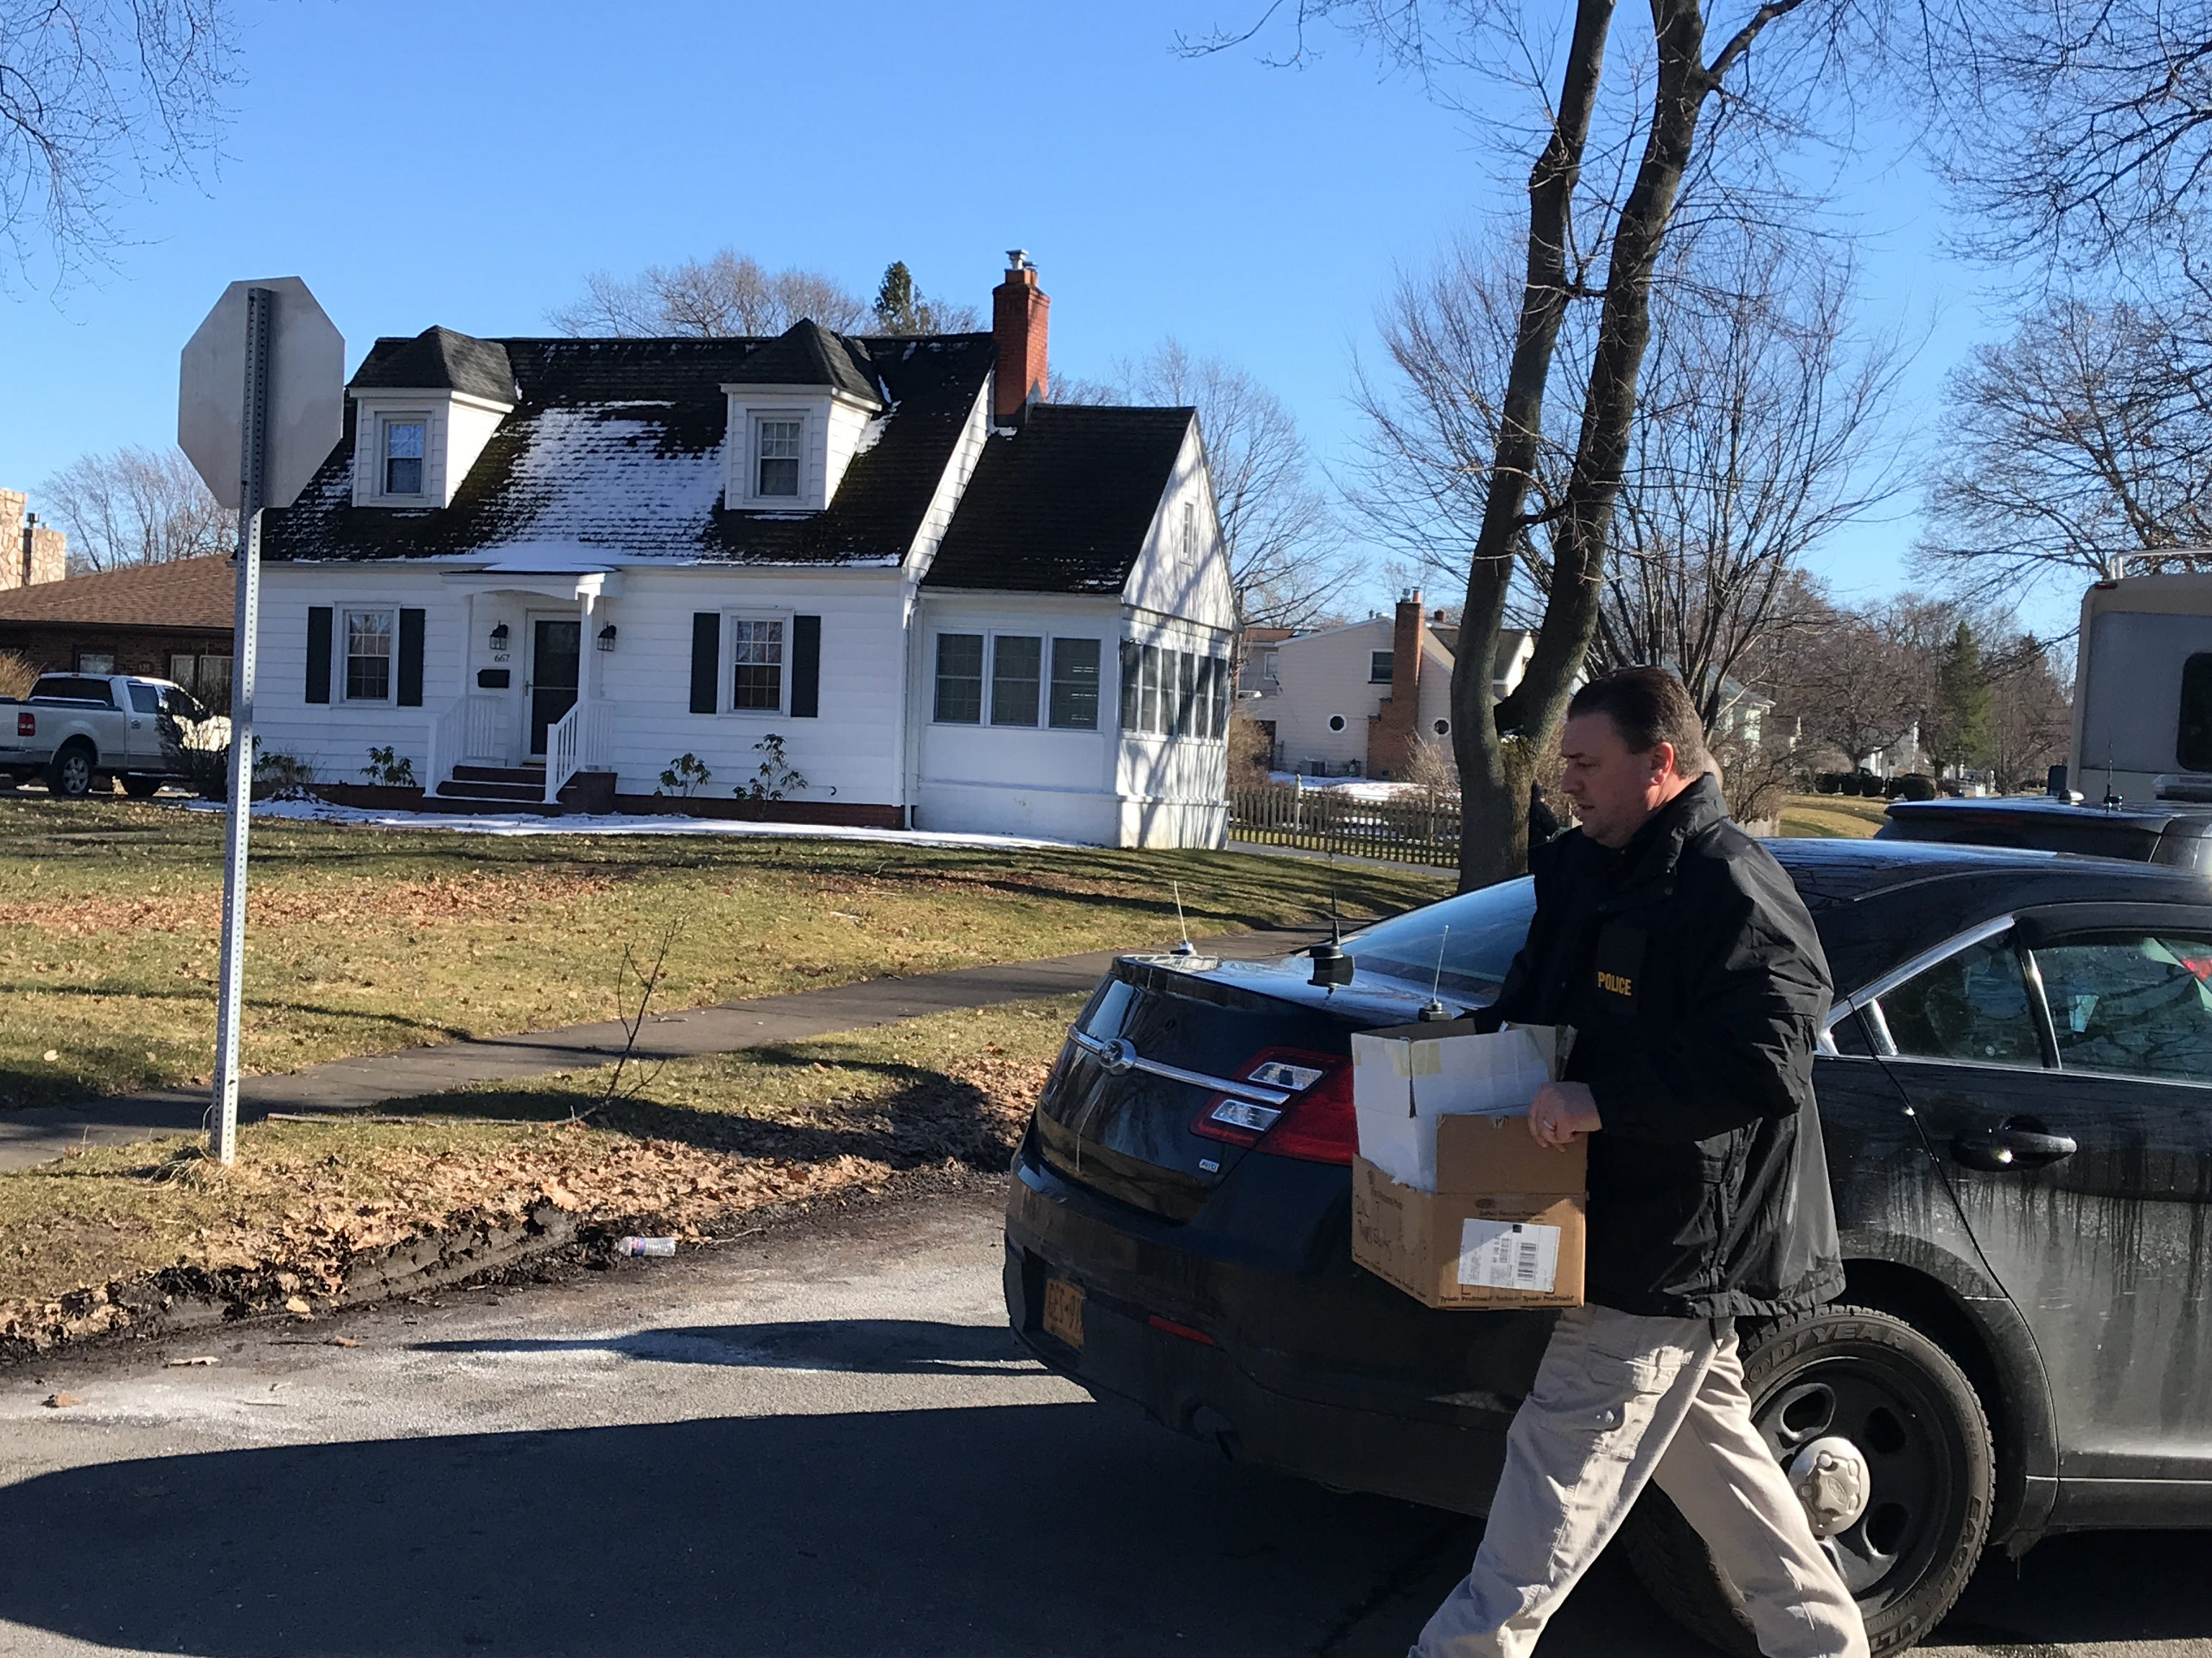 A police officer carries away items from the scene of a suspicious death on Lakeshore Boulevard.